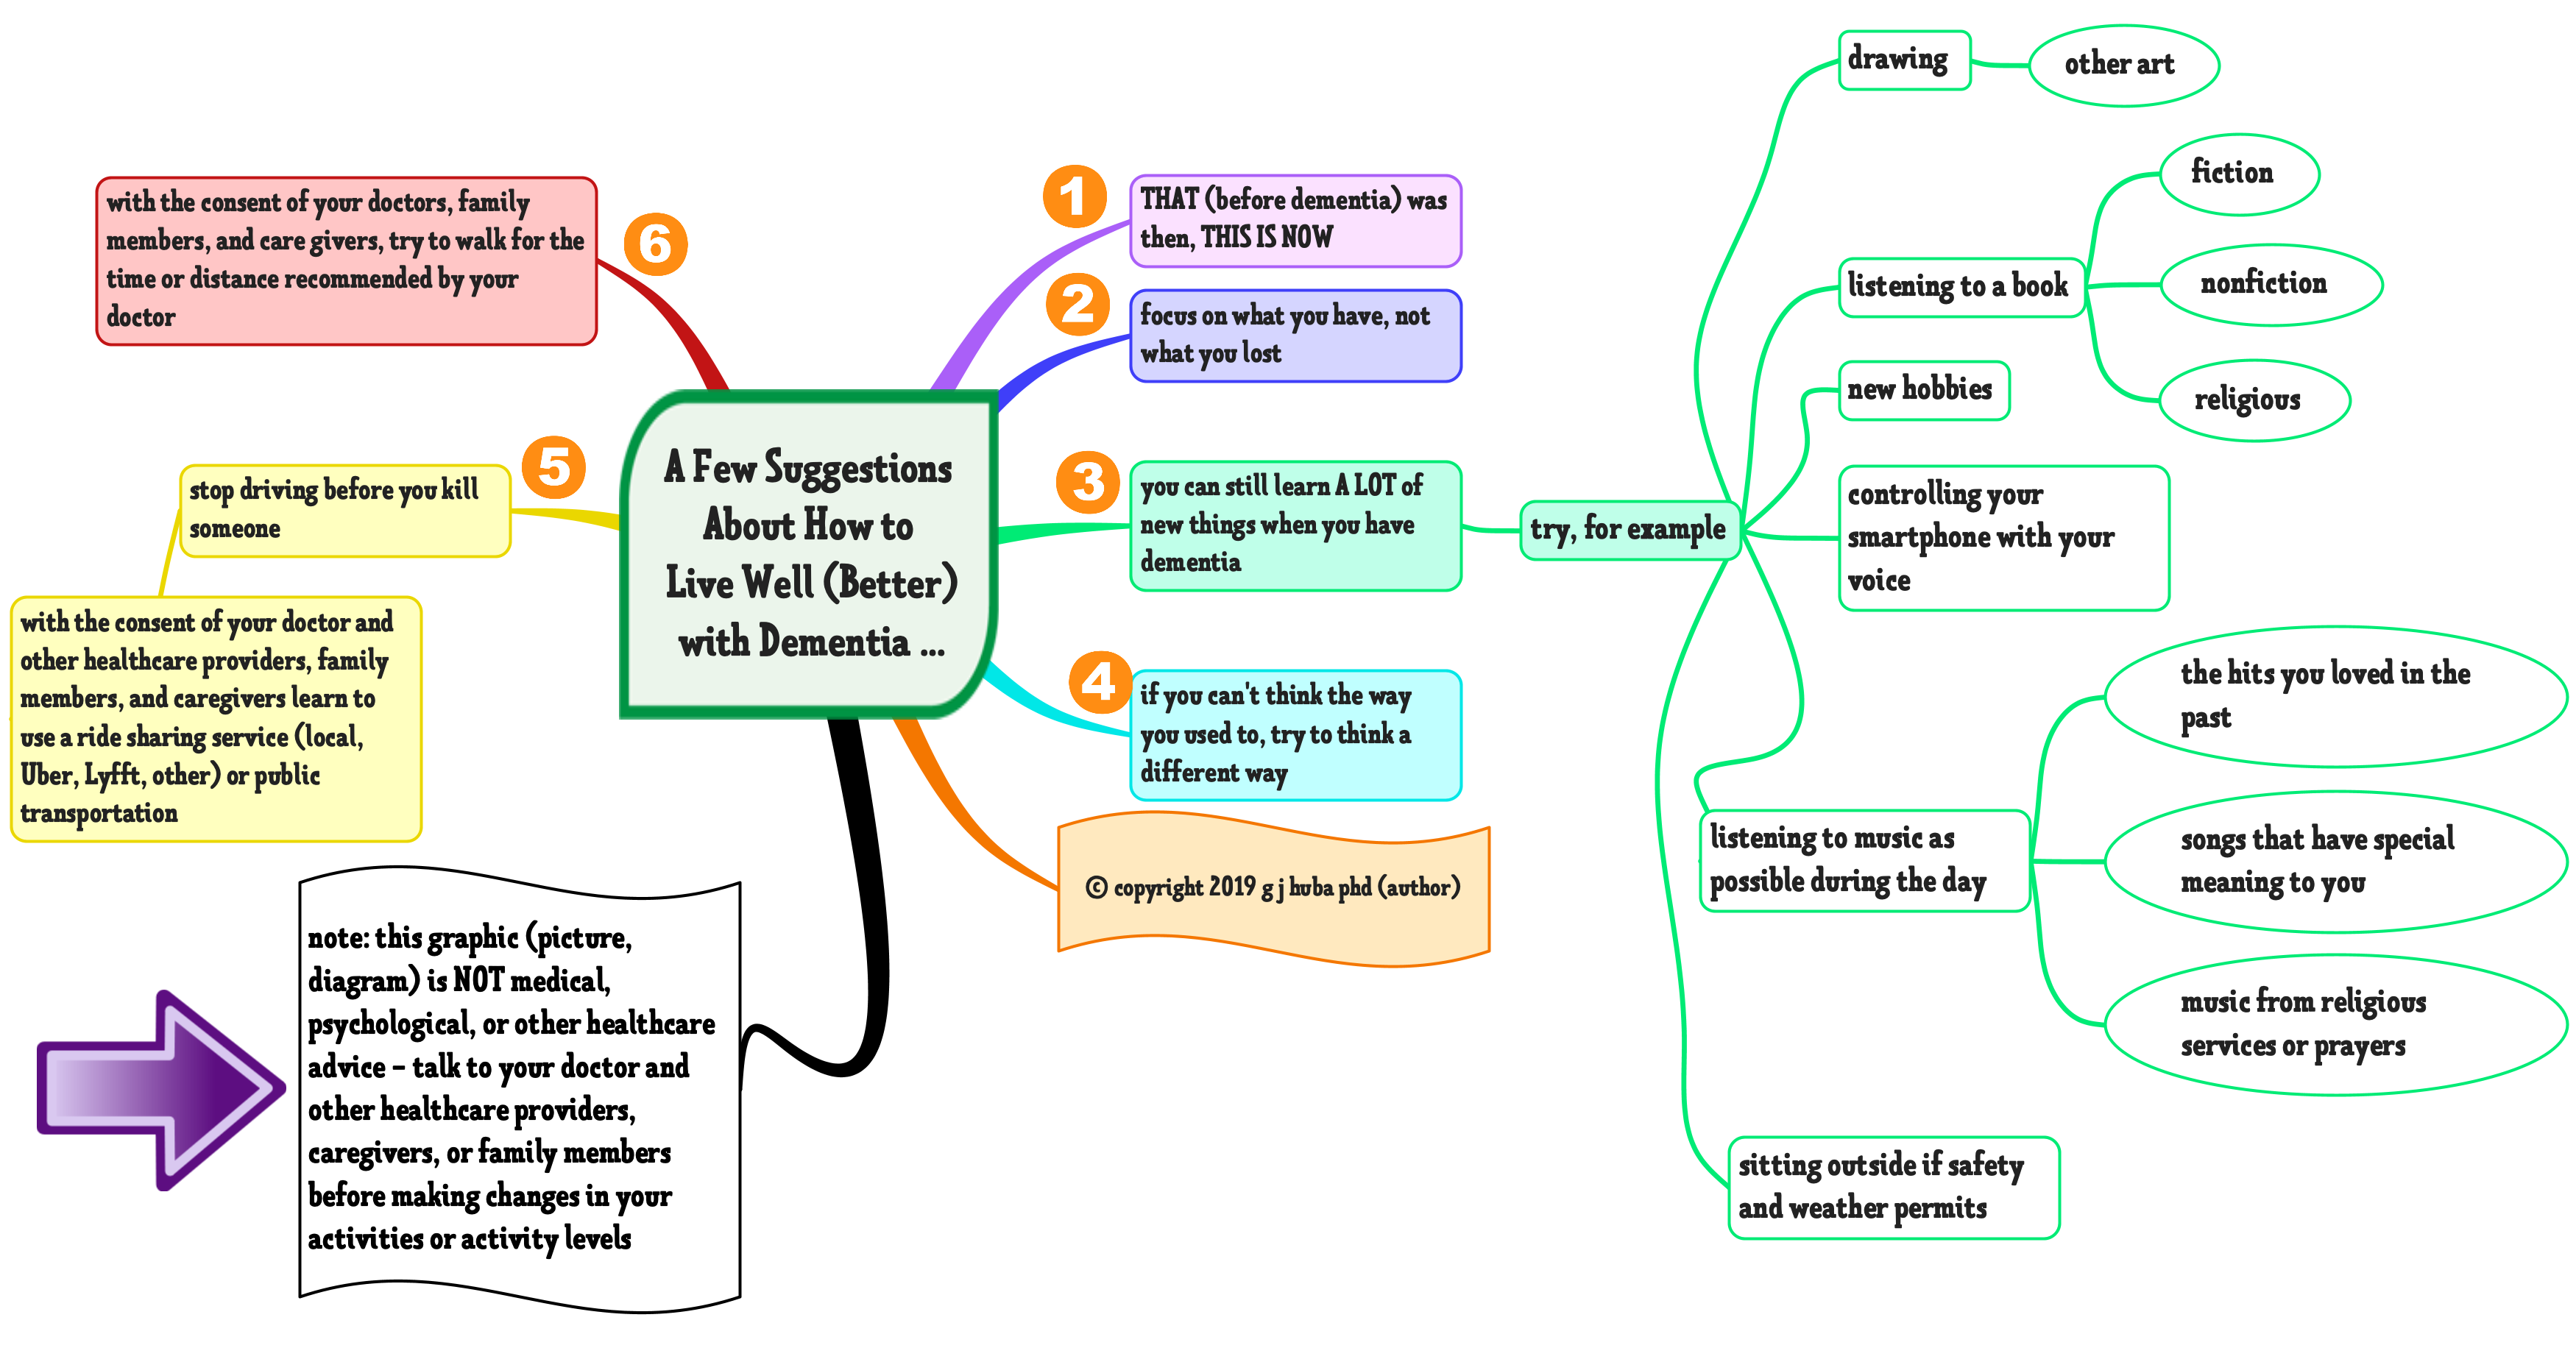 A Few Suggestions About How to Live Well (Better) with Dementia ...